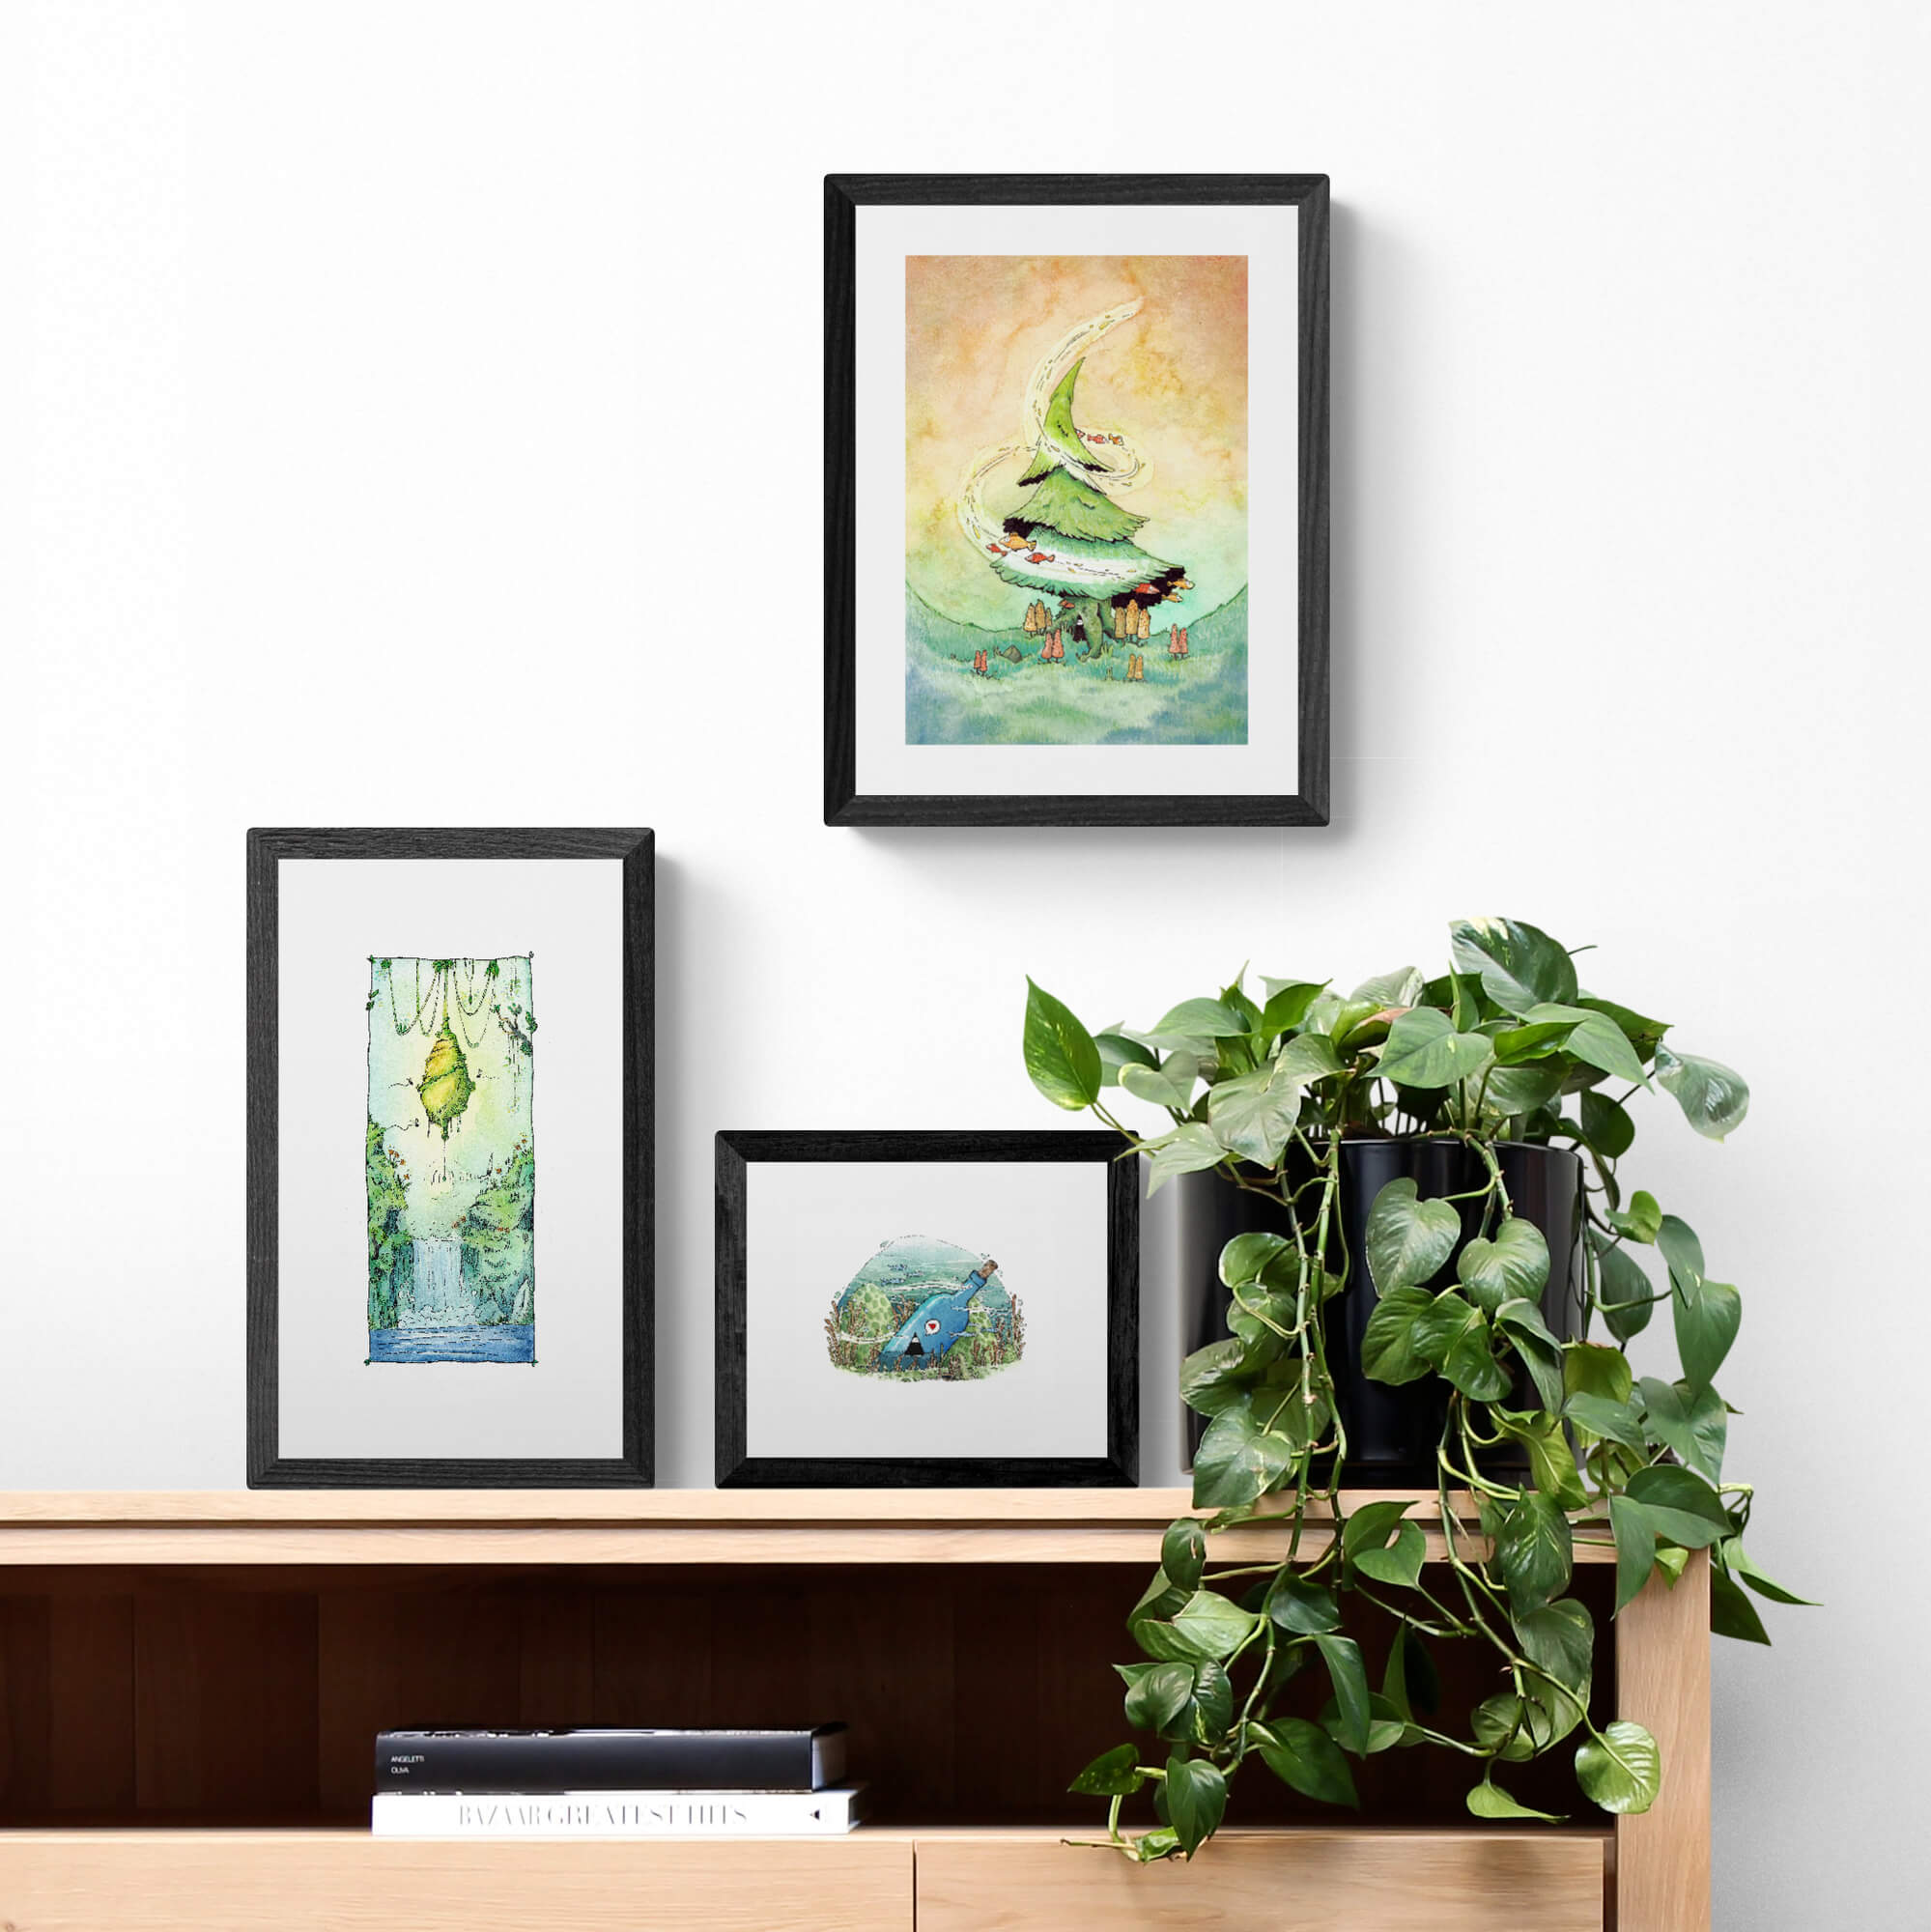 Three paintings on a sideboard with a plant. The pictures represent pleasant scenes.